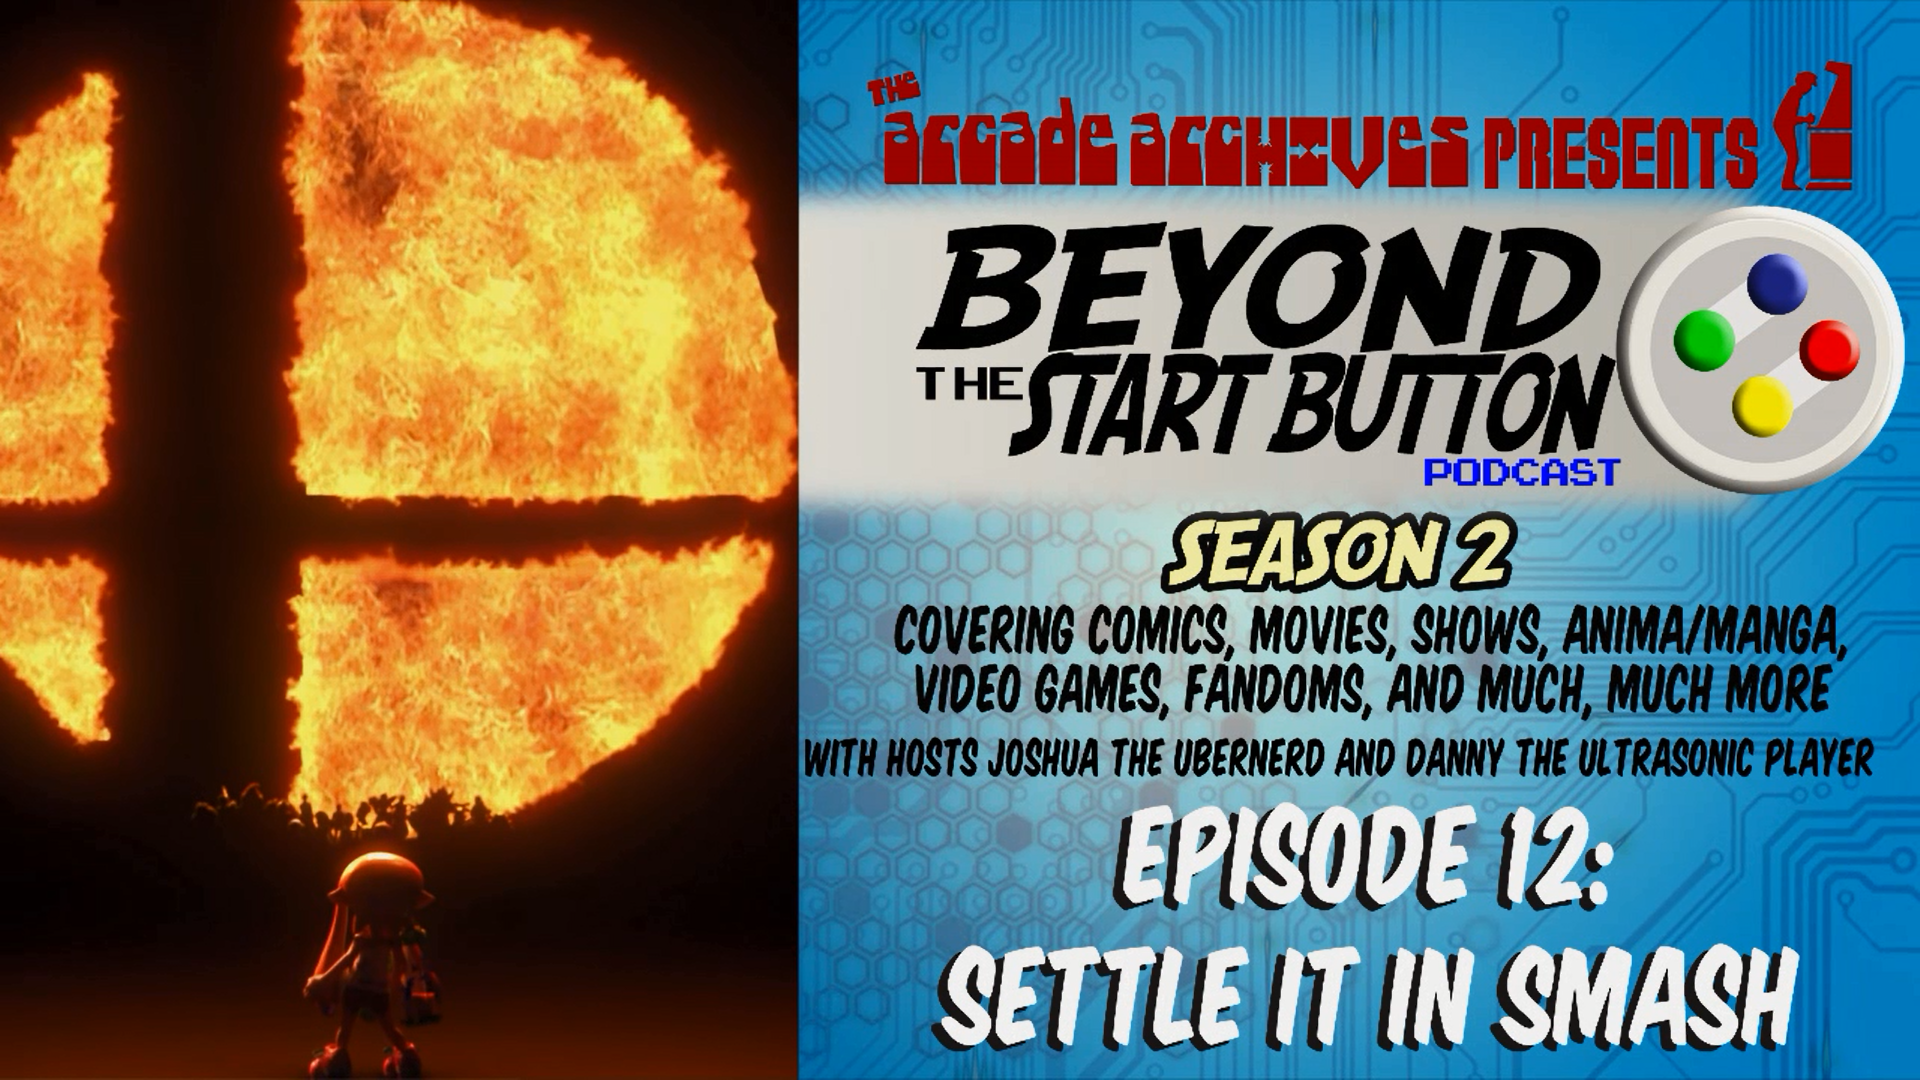 Episode 12: Settle it in Smash – Beyond the Start Button